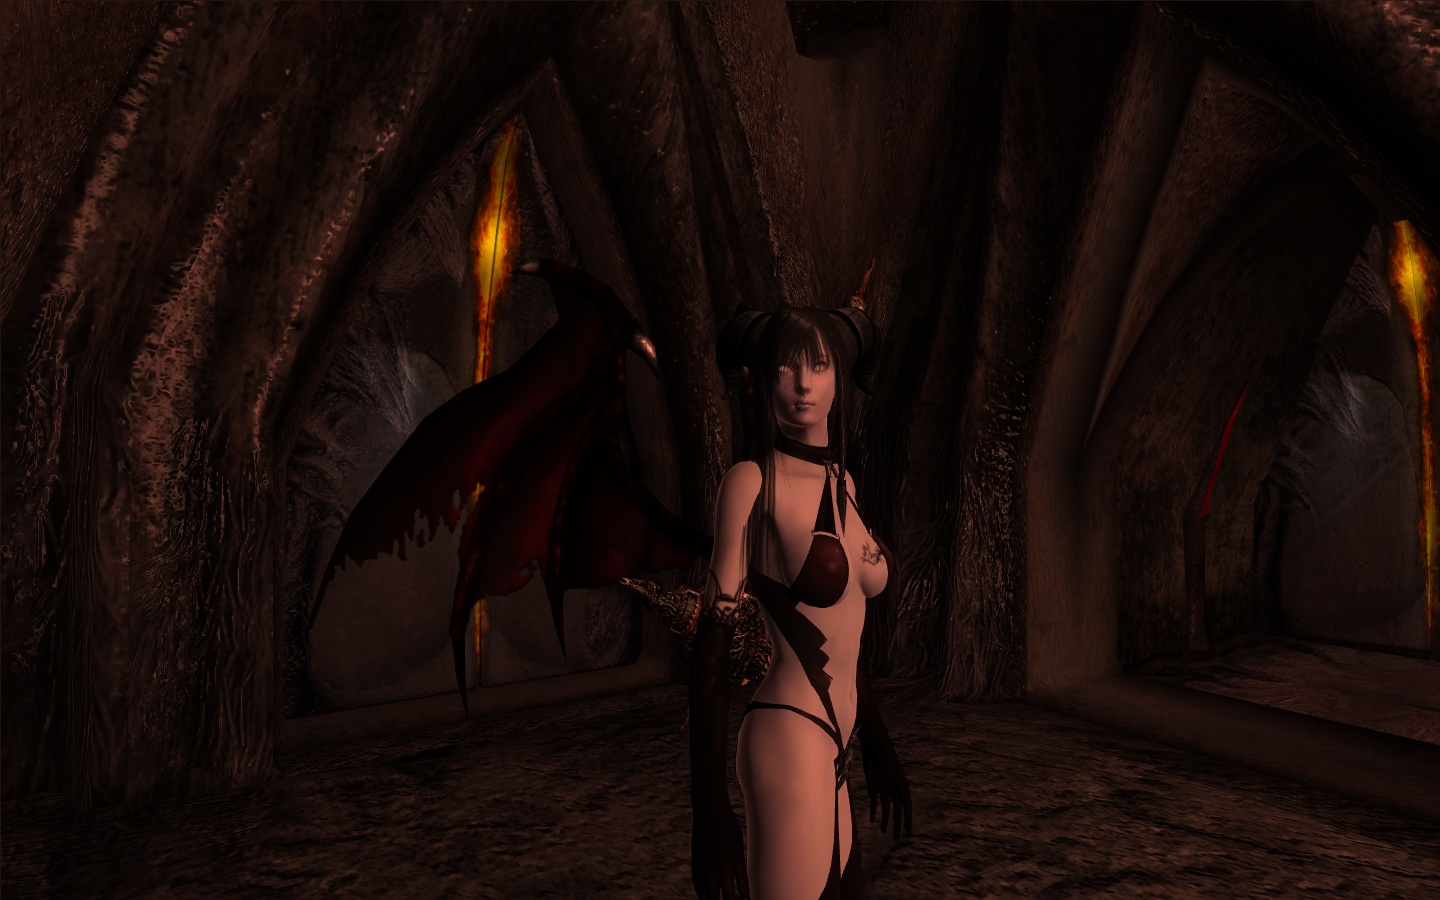 Elder scrolls 4 sex mod erotic photos